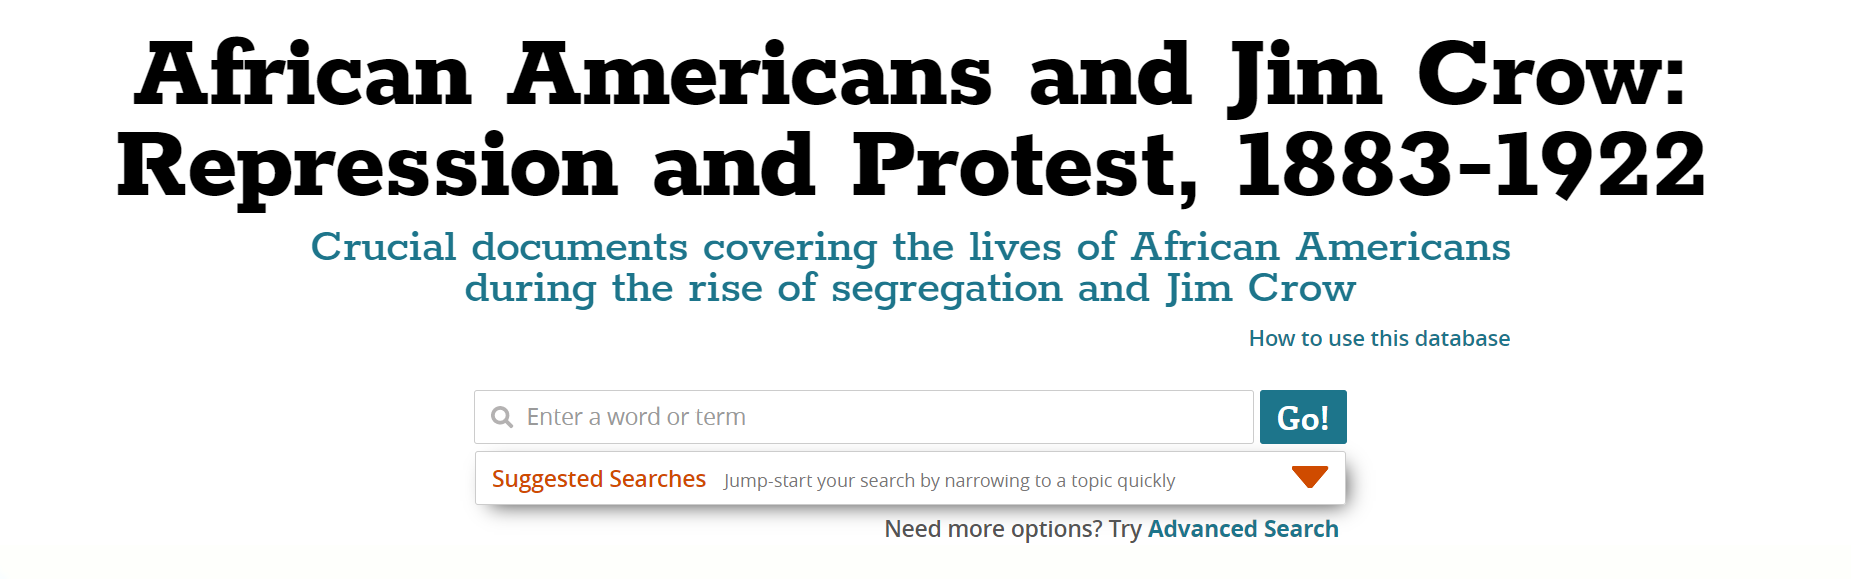 """Screenshot of a database. Text reads, """"African Americans and Jim Crow: Repression and Protest, 1883-1922. Crucial documents covering the lives of African Americans during the rise of segregation and Jim Crow."""""""